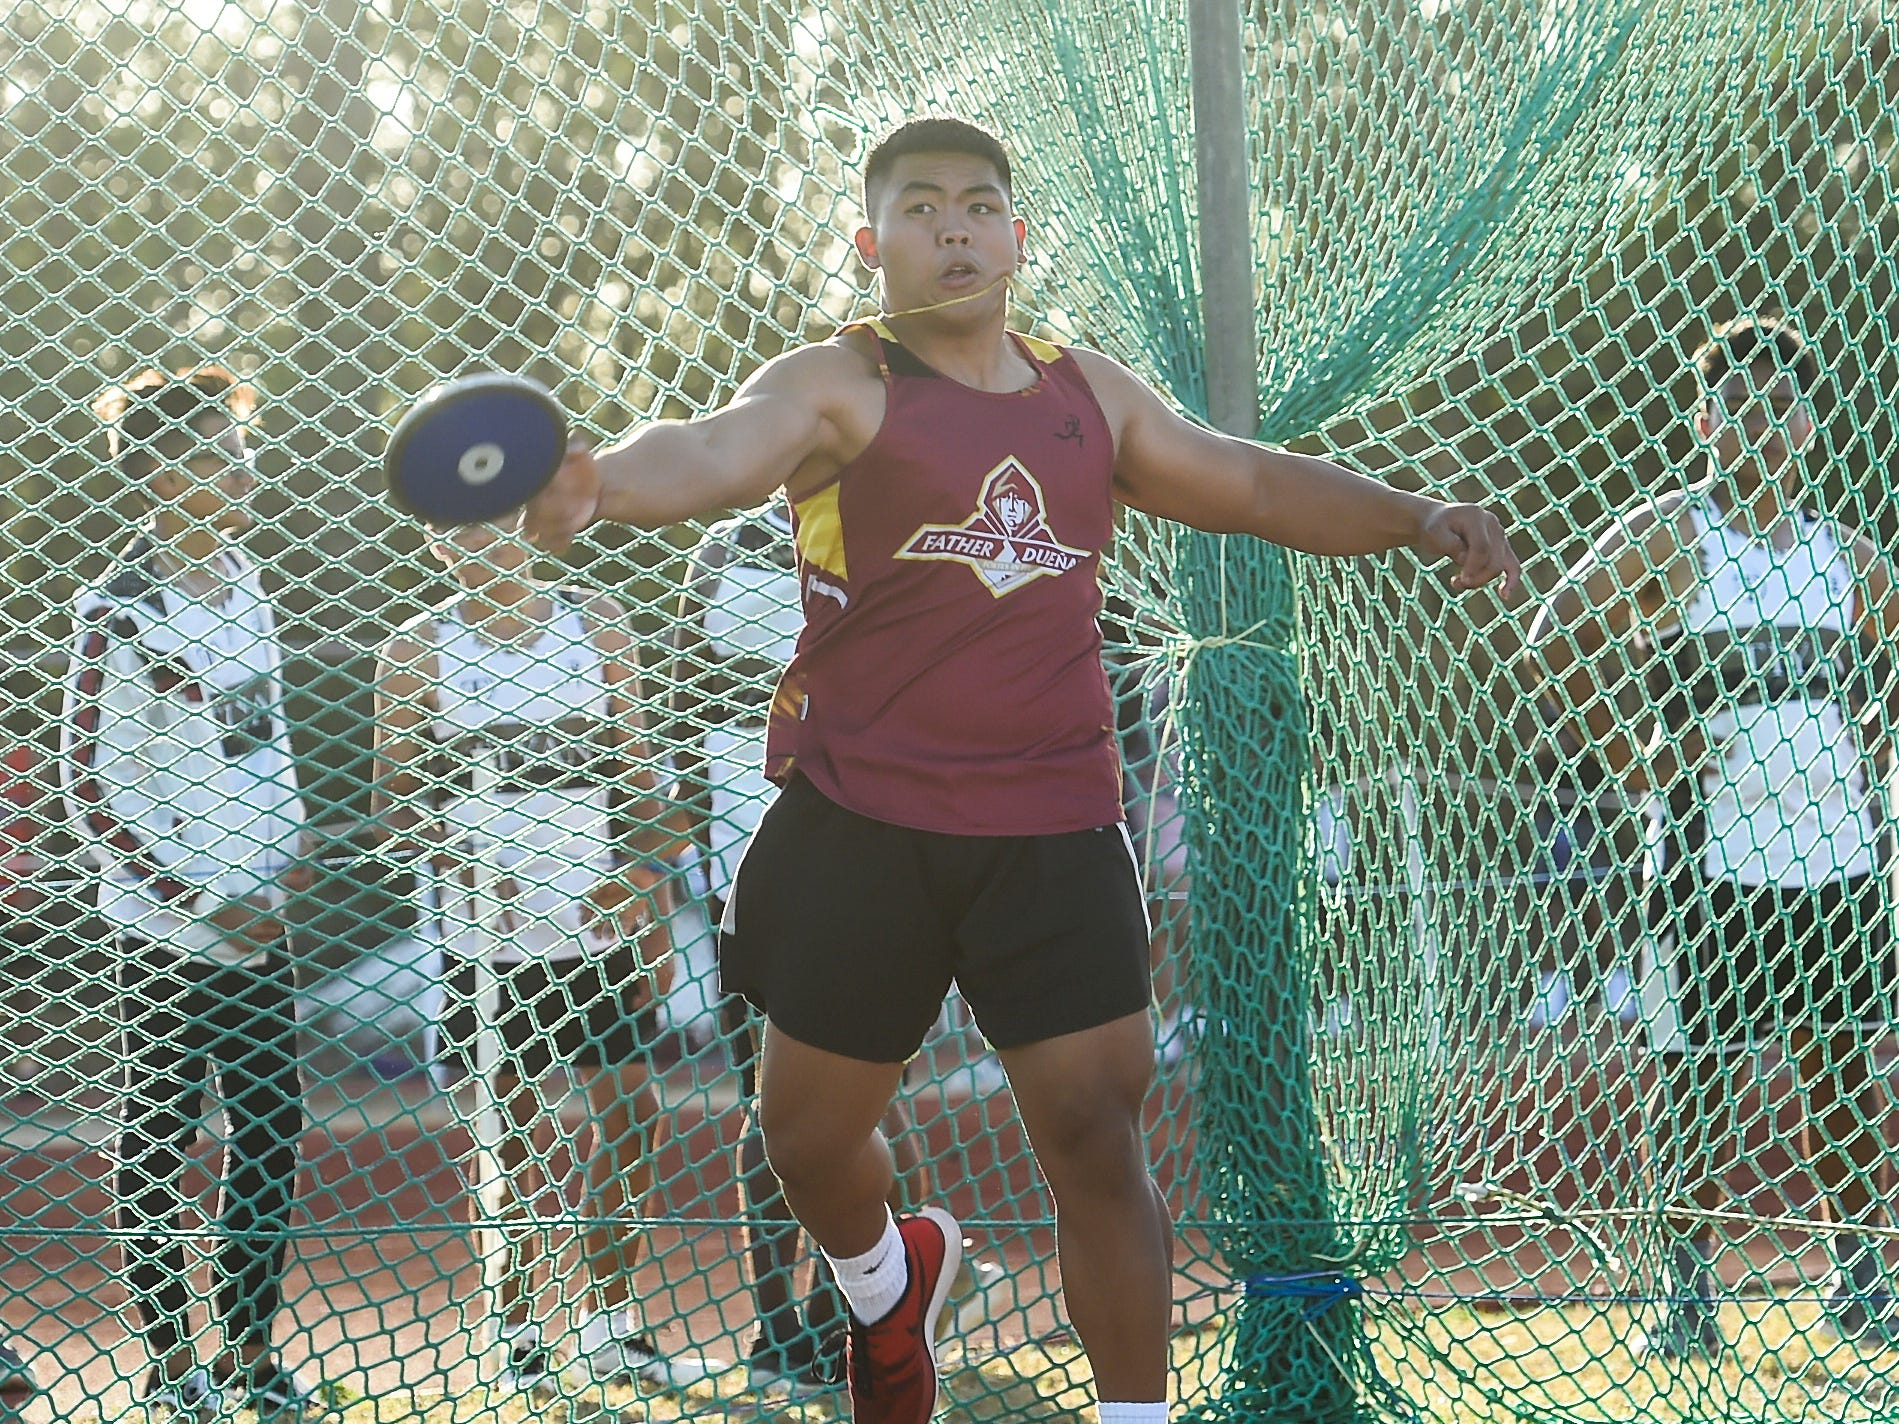 Father Duenas' Kevin Agarpao, 17, competes in the Discus 1.6kg Varsity during a IIAAG Track and Field meet at John F. Kennedy Ramsey Field in Tamuning on May 10, 2019.